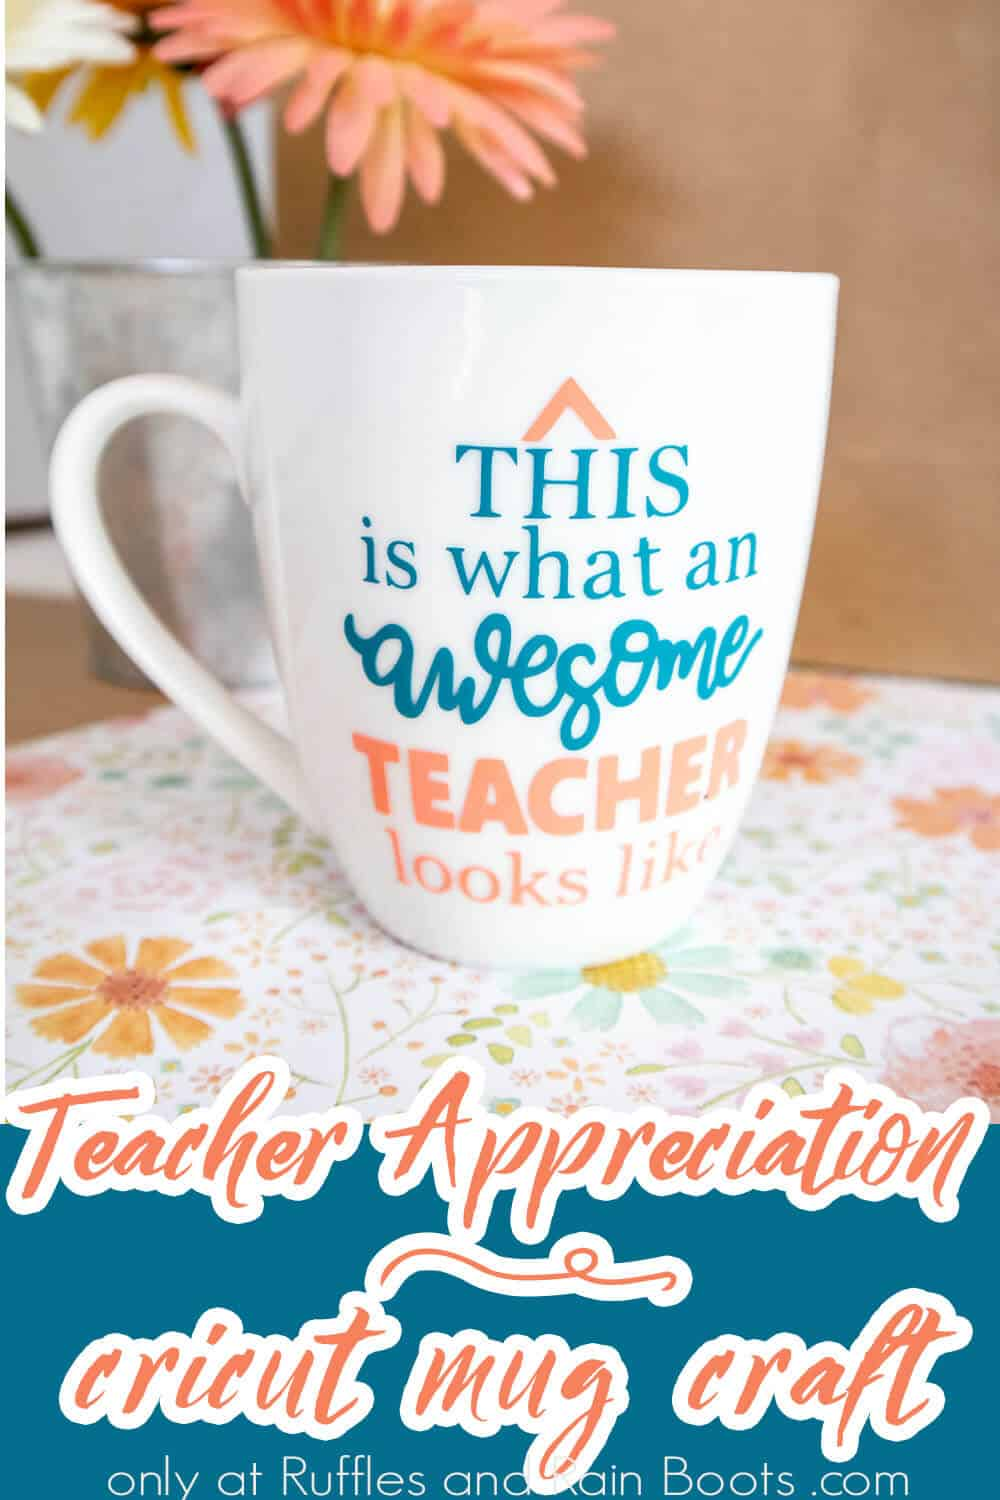 teacher gift mug cricut craft with text which reads teacher appreciation cricut mug craft